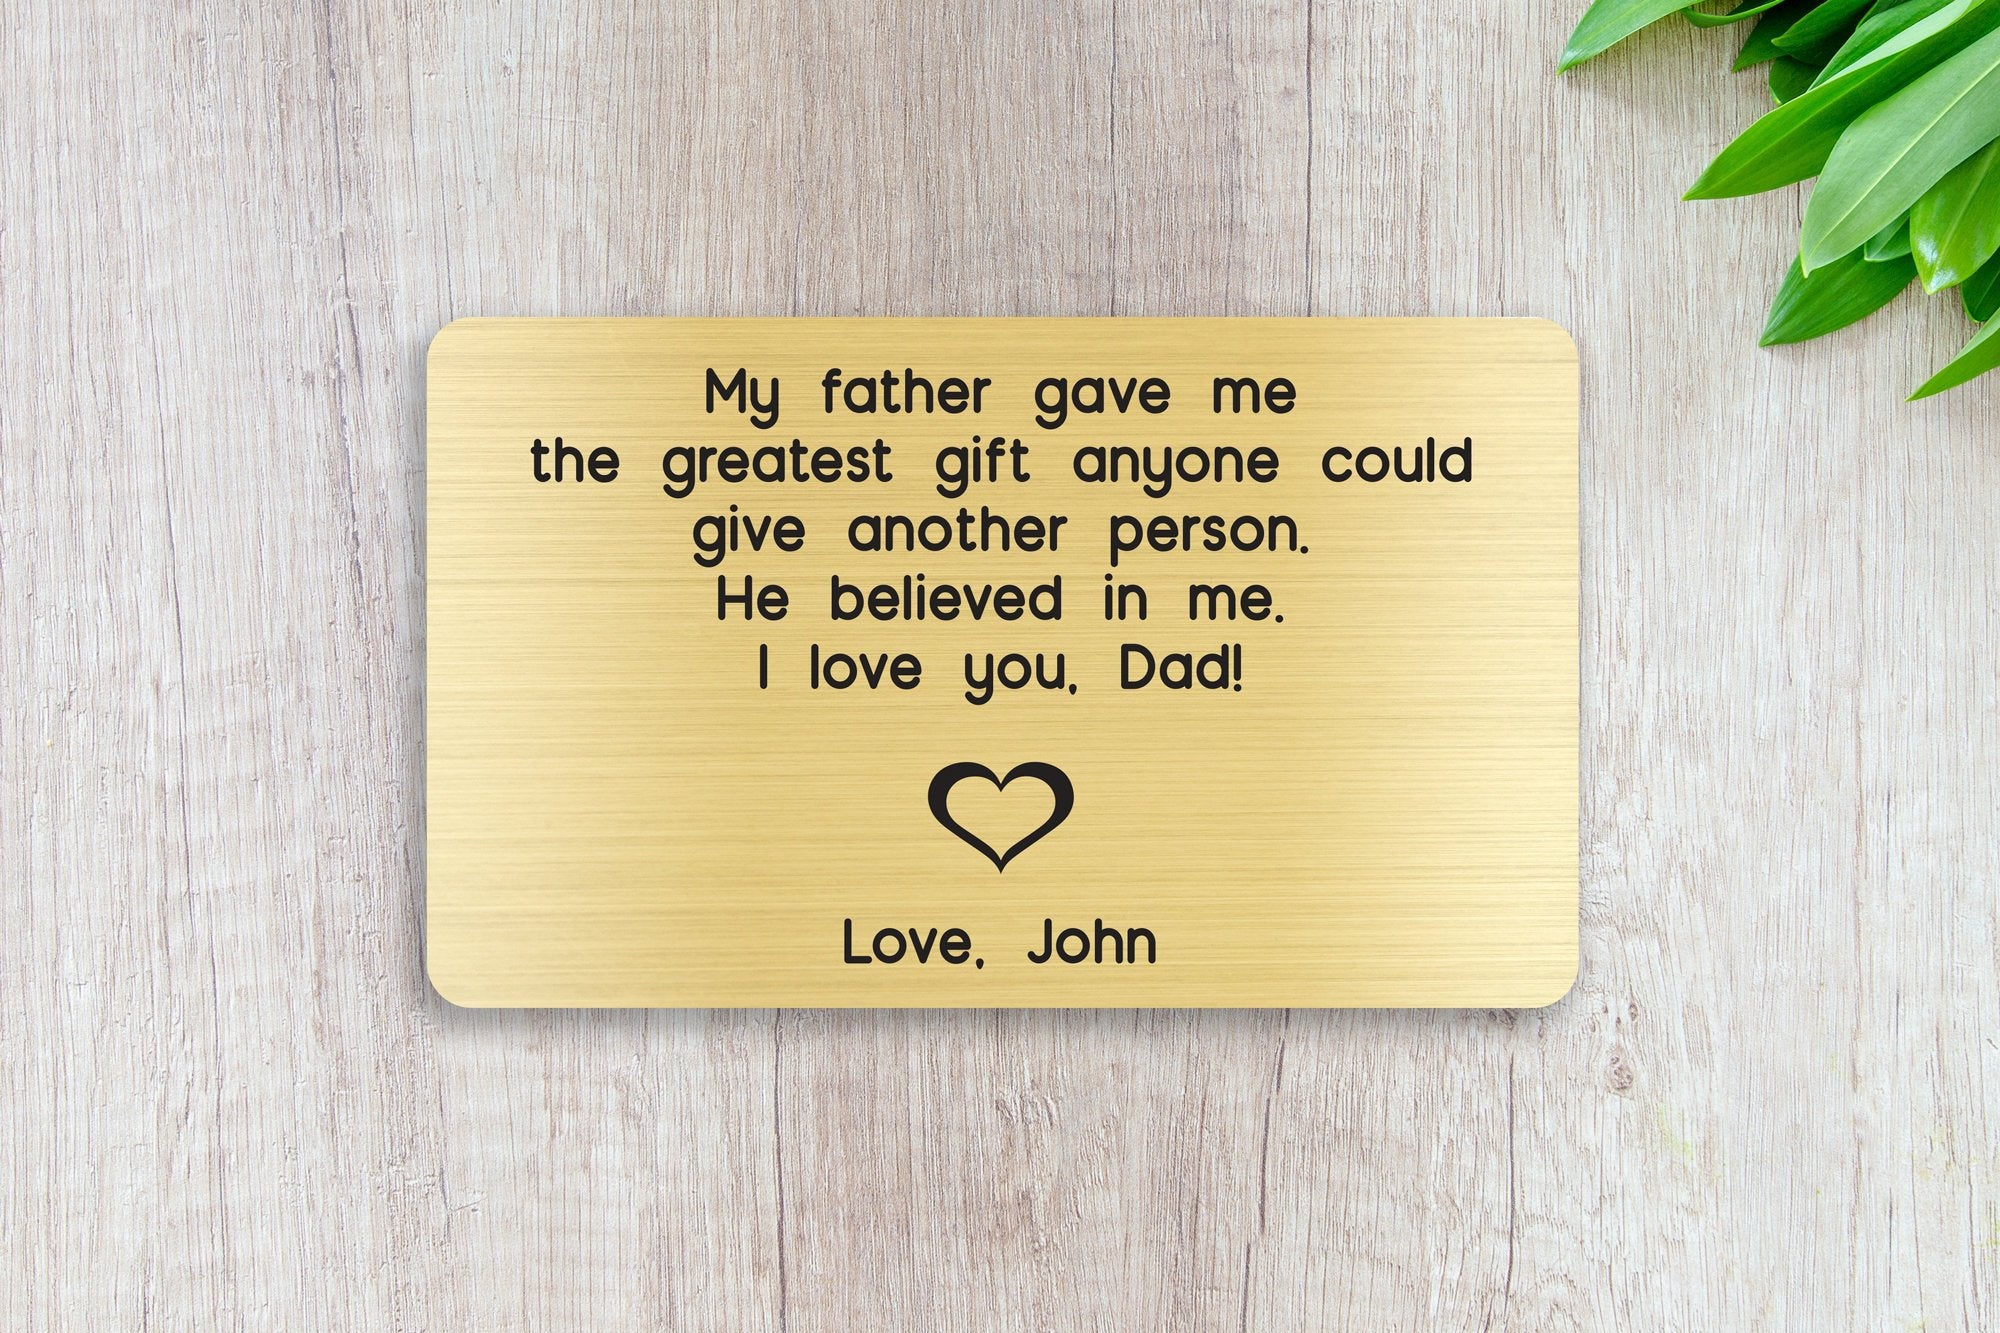 Personalized Engraved Wallet Card Insert, My Father Believed In Me, Dad, Gift, Father's Day, From the Kids, Gold